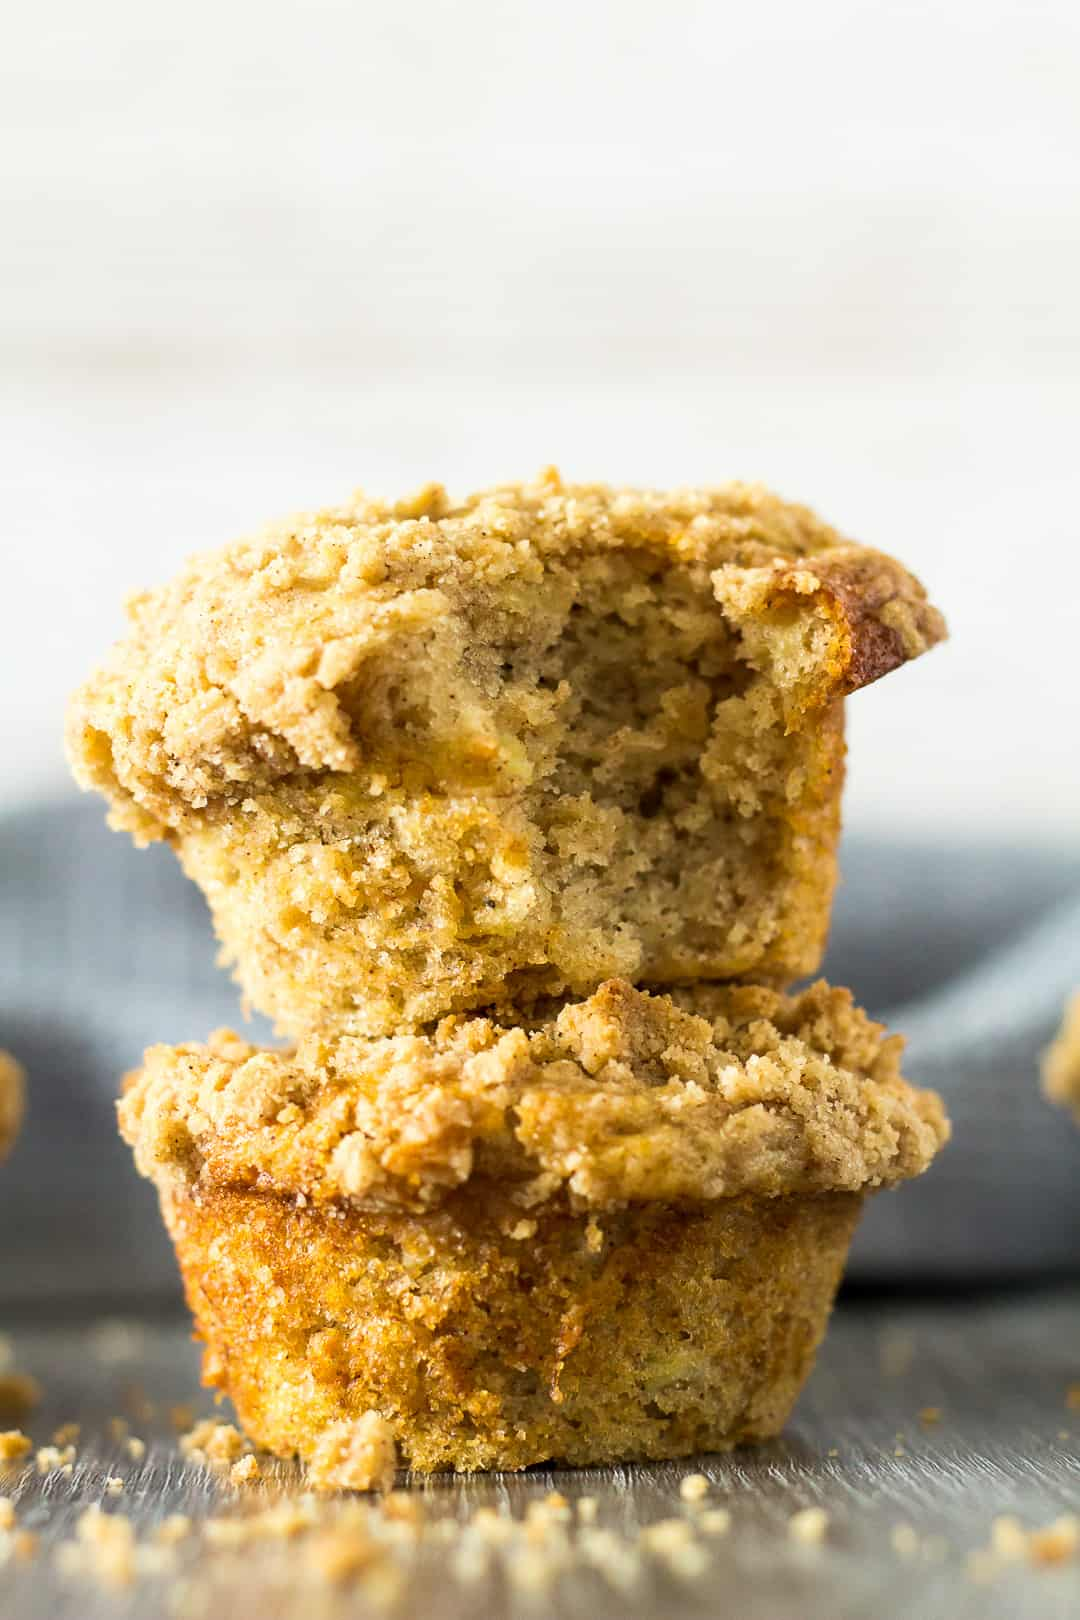 A stack of two Banana Crumb Muffins with a bite taken out of the top muffin.